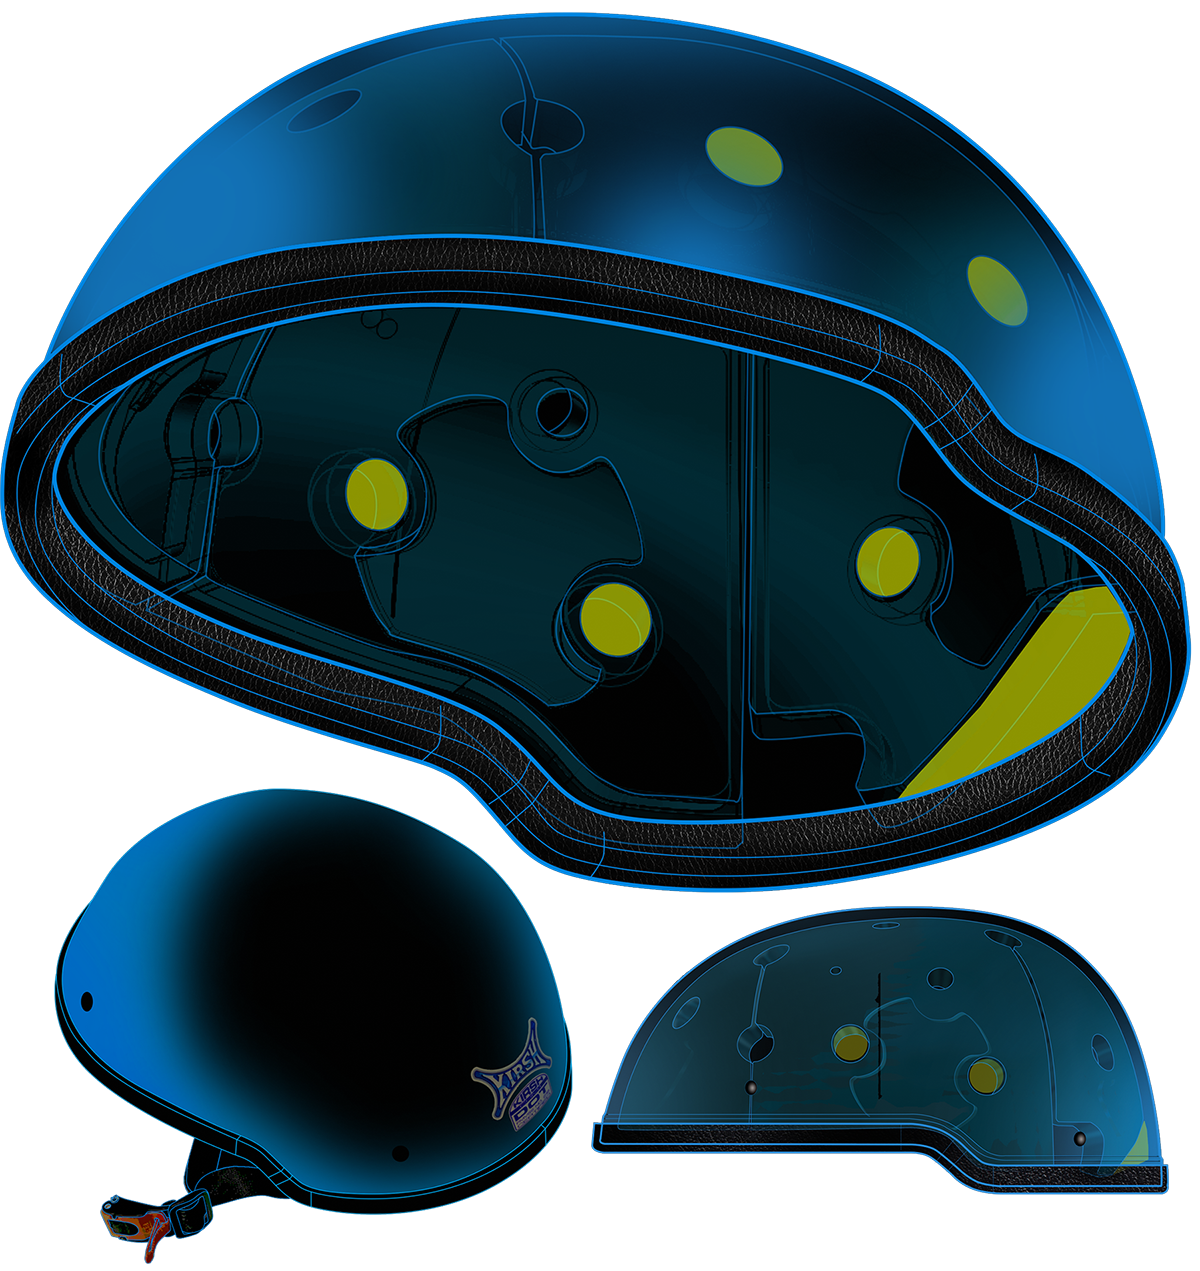 KIRSH Motorcycle HELMET TECHNOLOGY